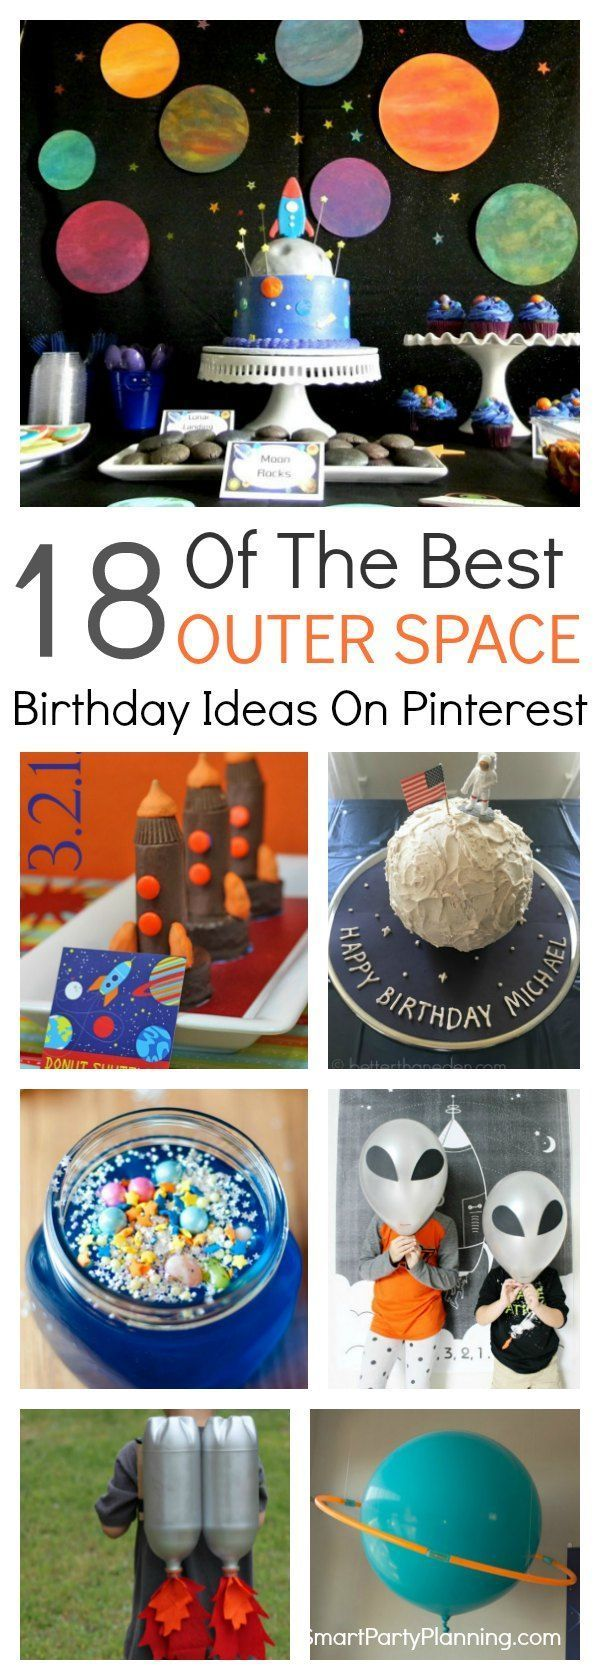 18 of the Best Outer Space Birthday Ideas on Pinterest #outerspaceparty